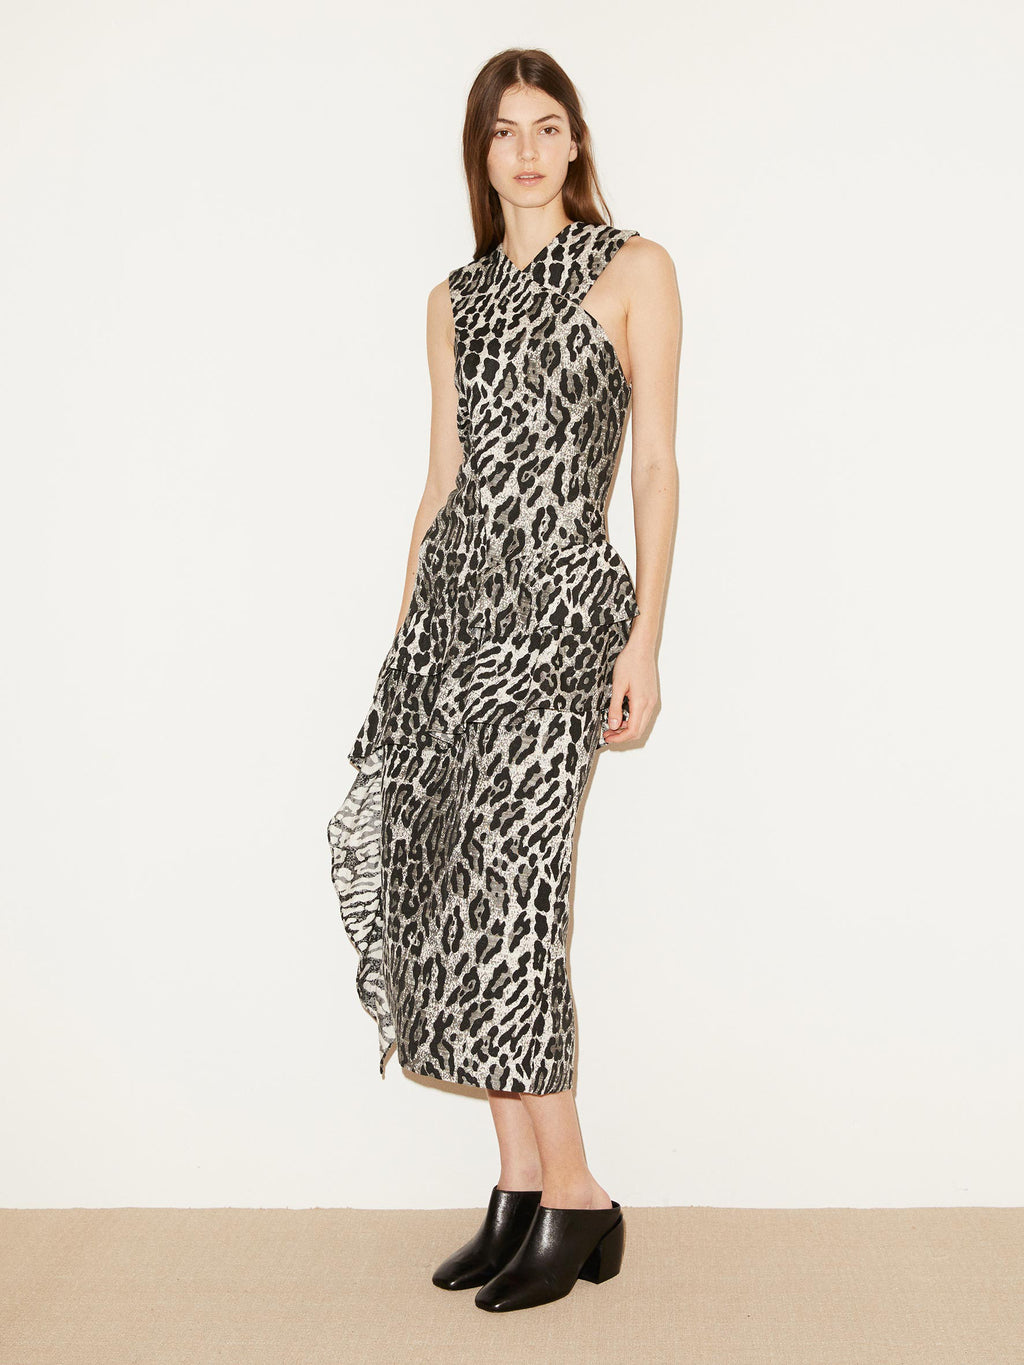 Amesia Grey Leopard Ruffle Dress